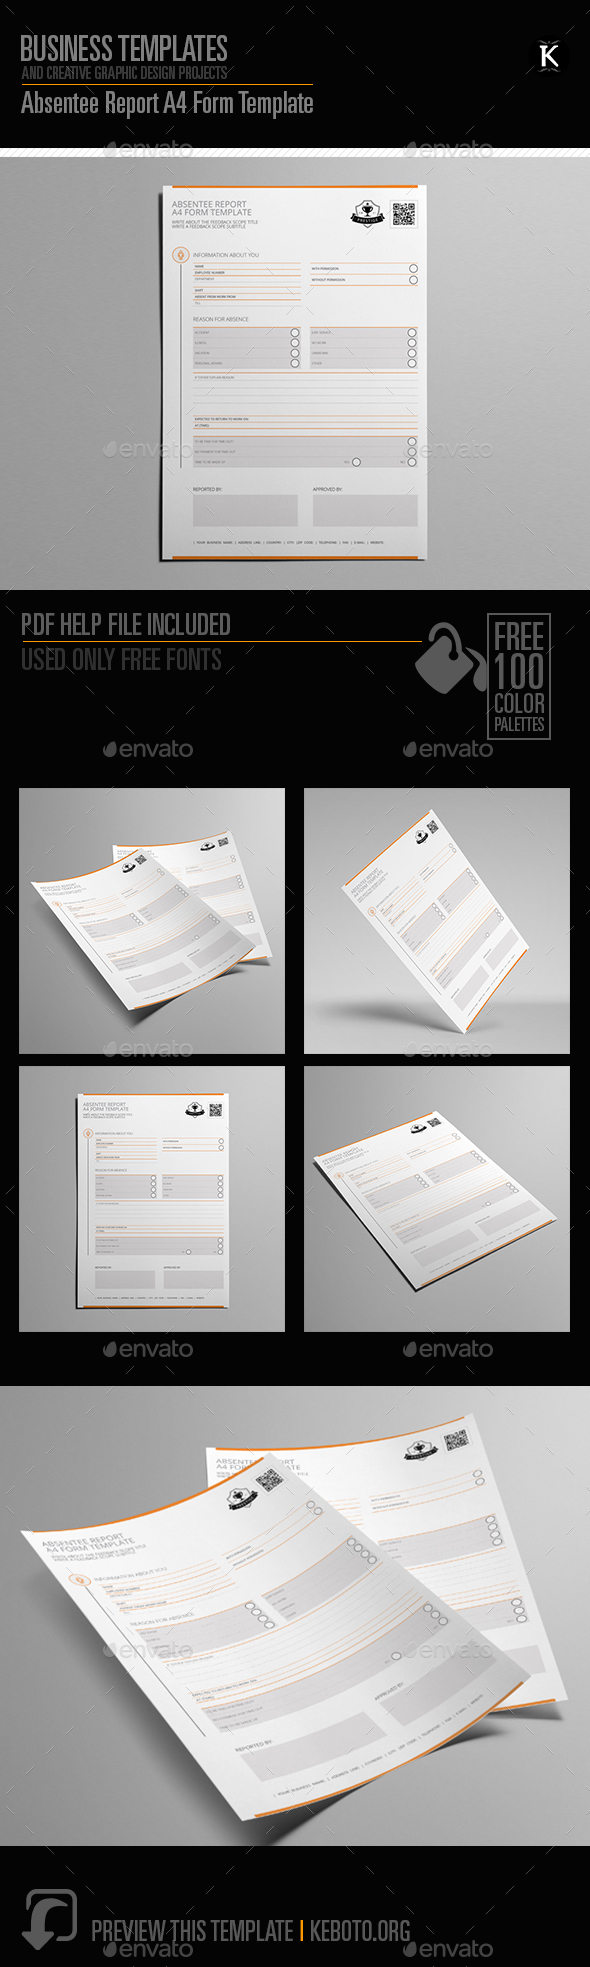 Absentee Report A4 Form Template - Miscellaneous Print Templates